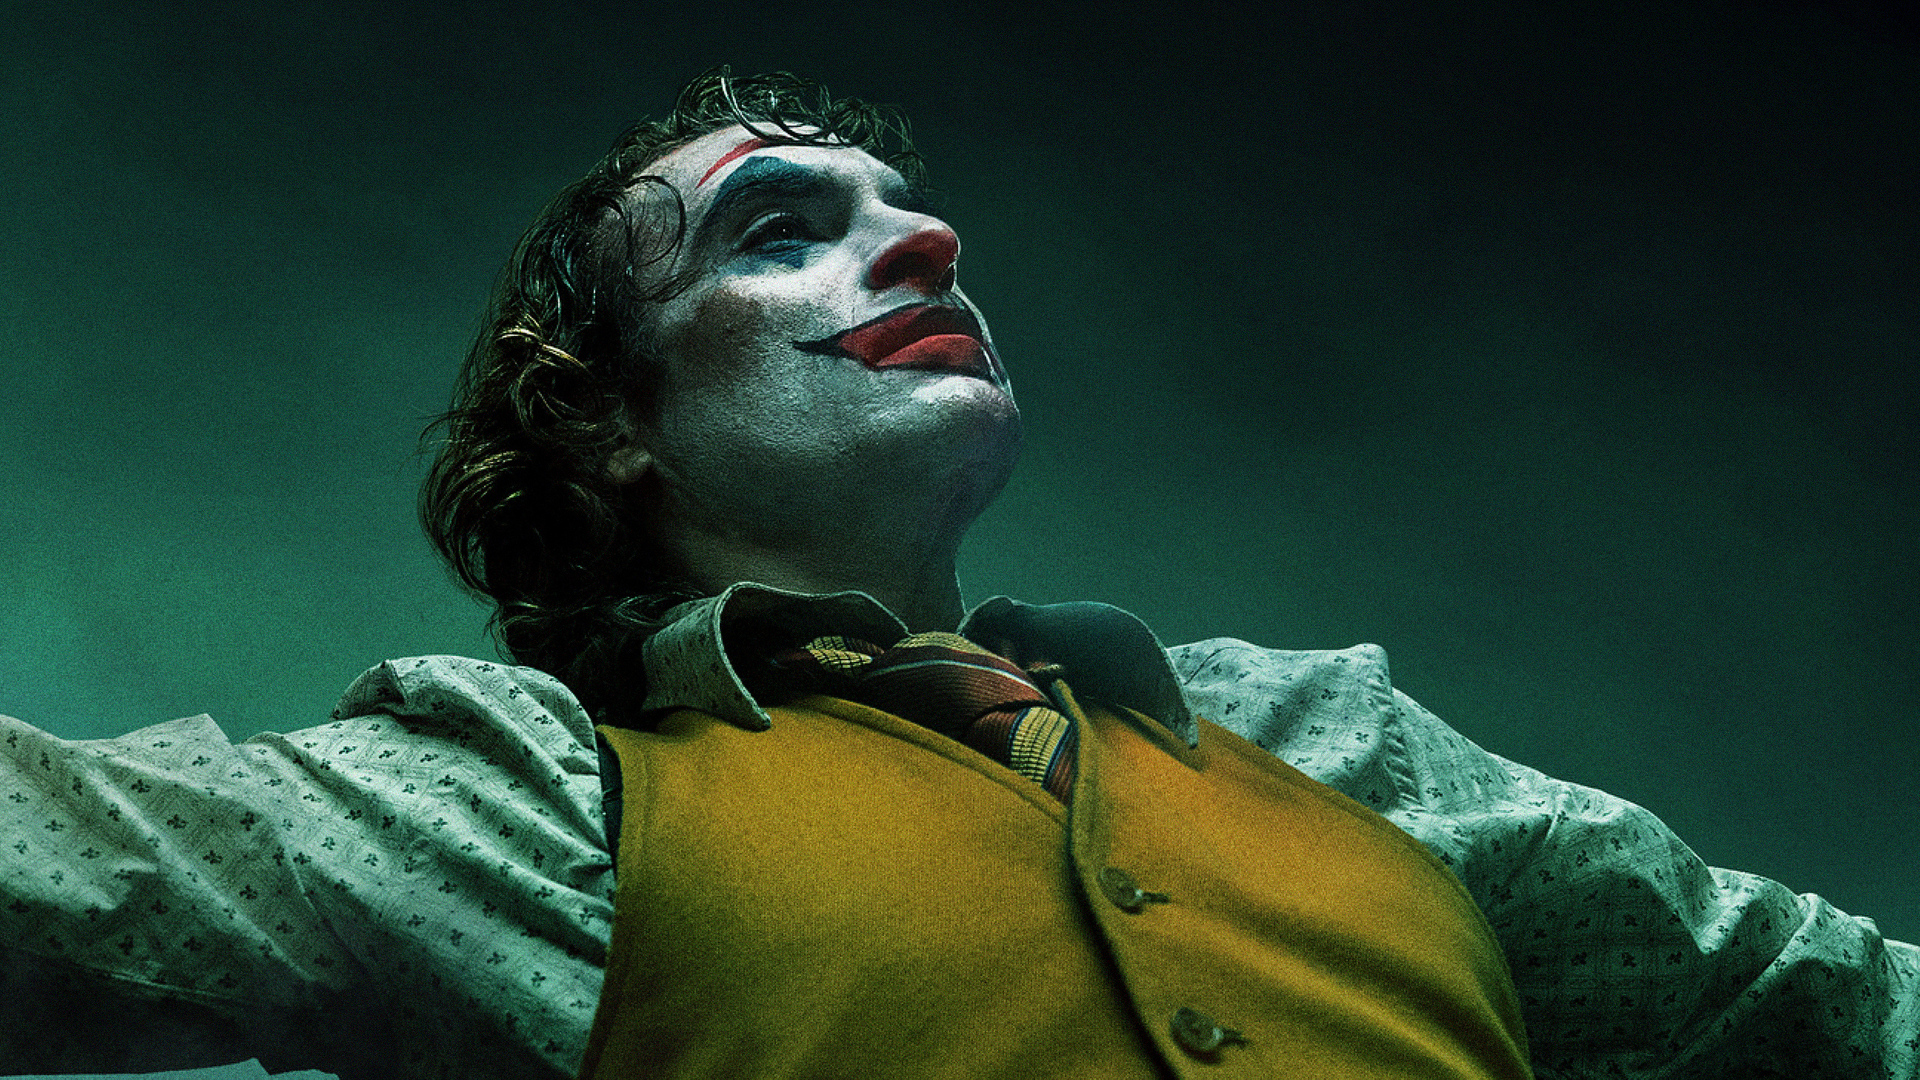 1920x1080 2019 Joker Joaquin Phoenix Laptop Full Hd 1080p Hd